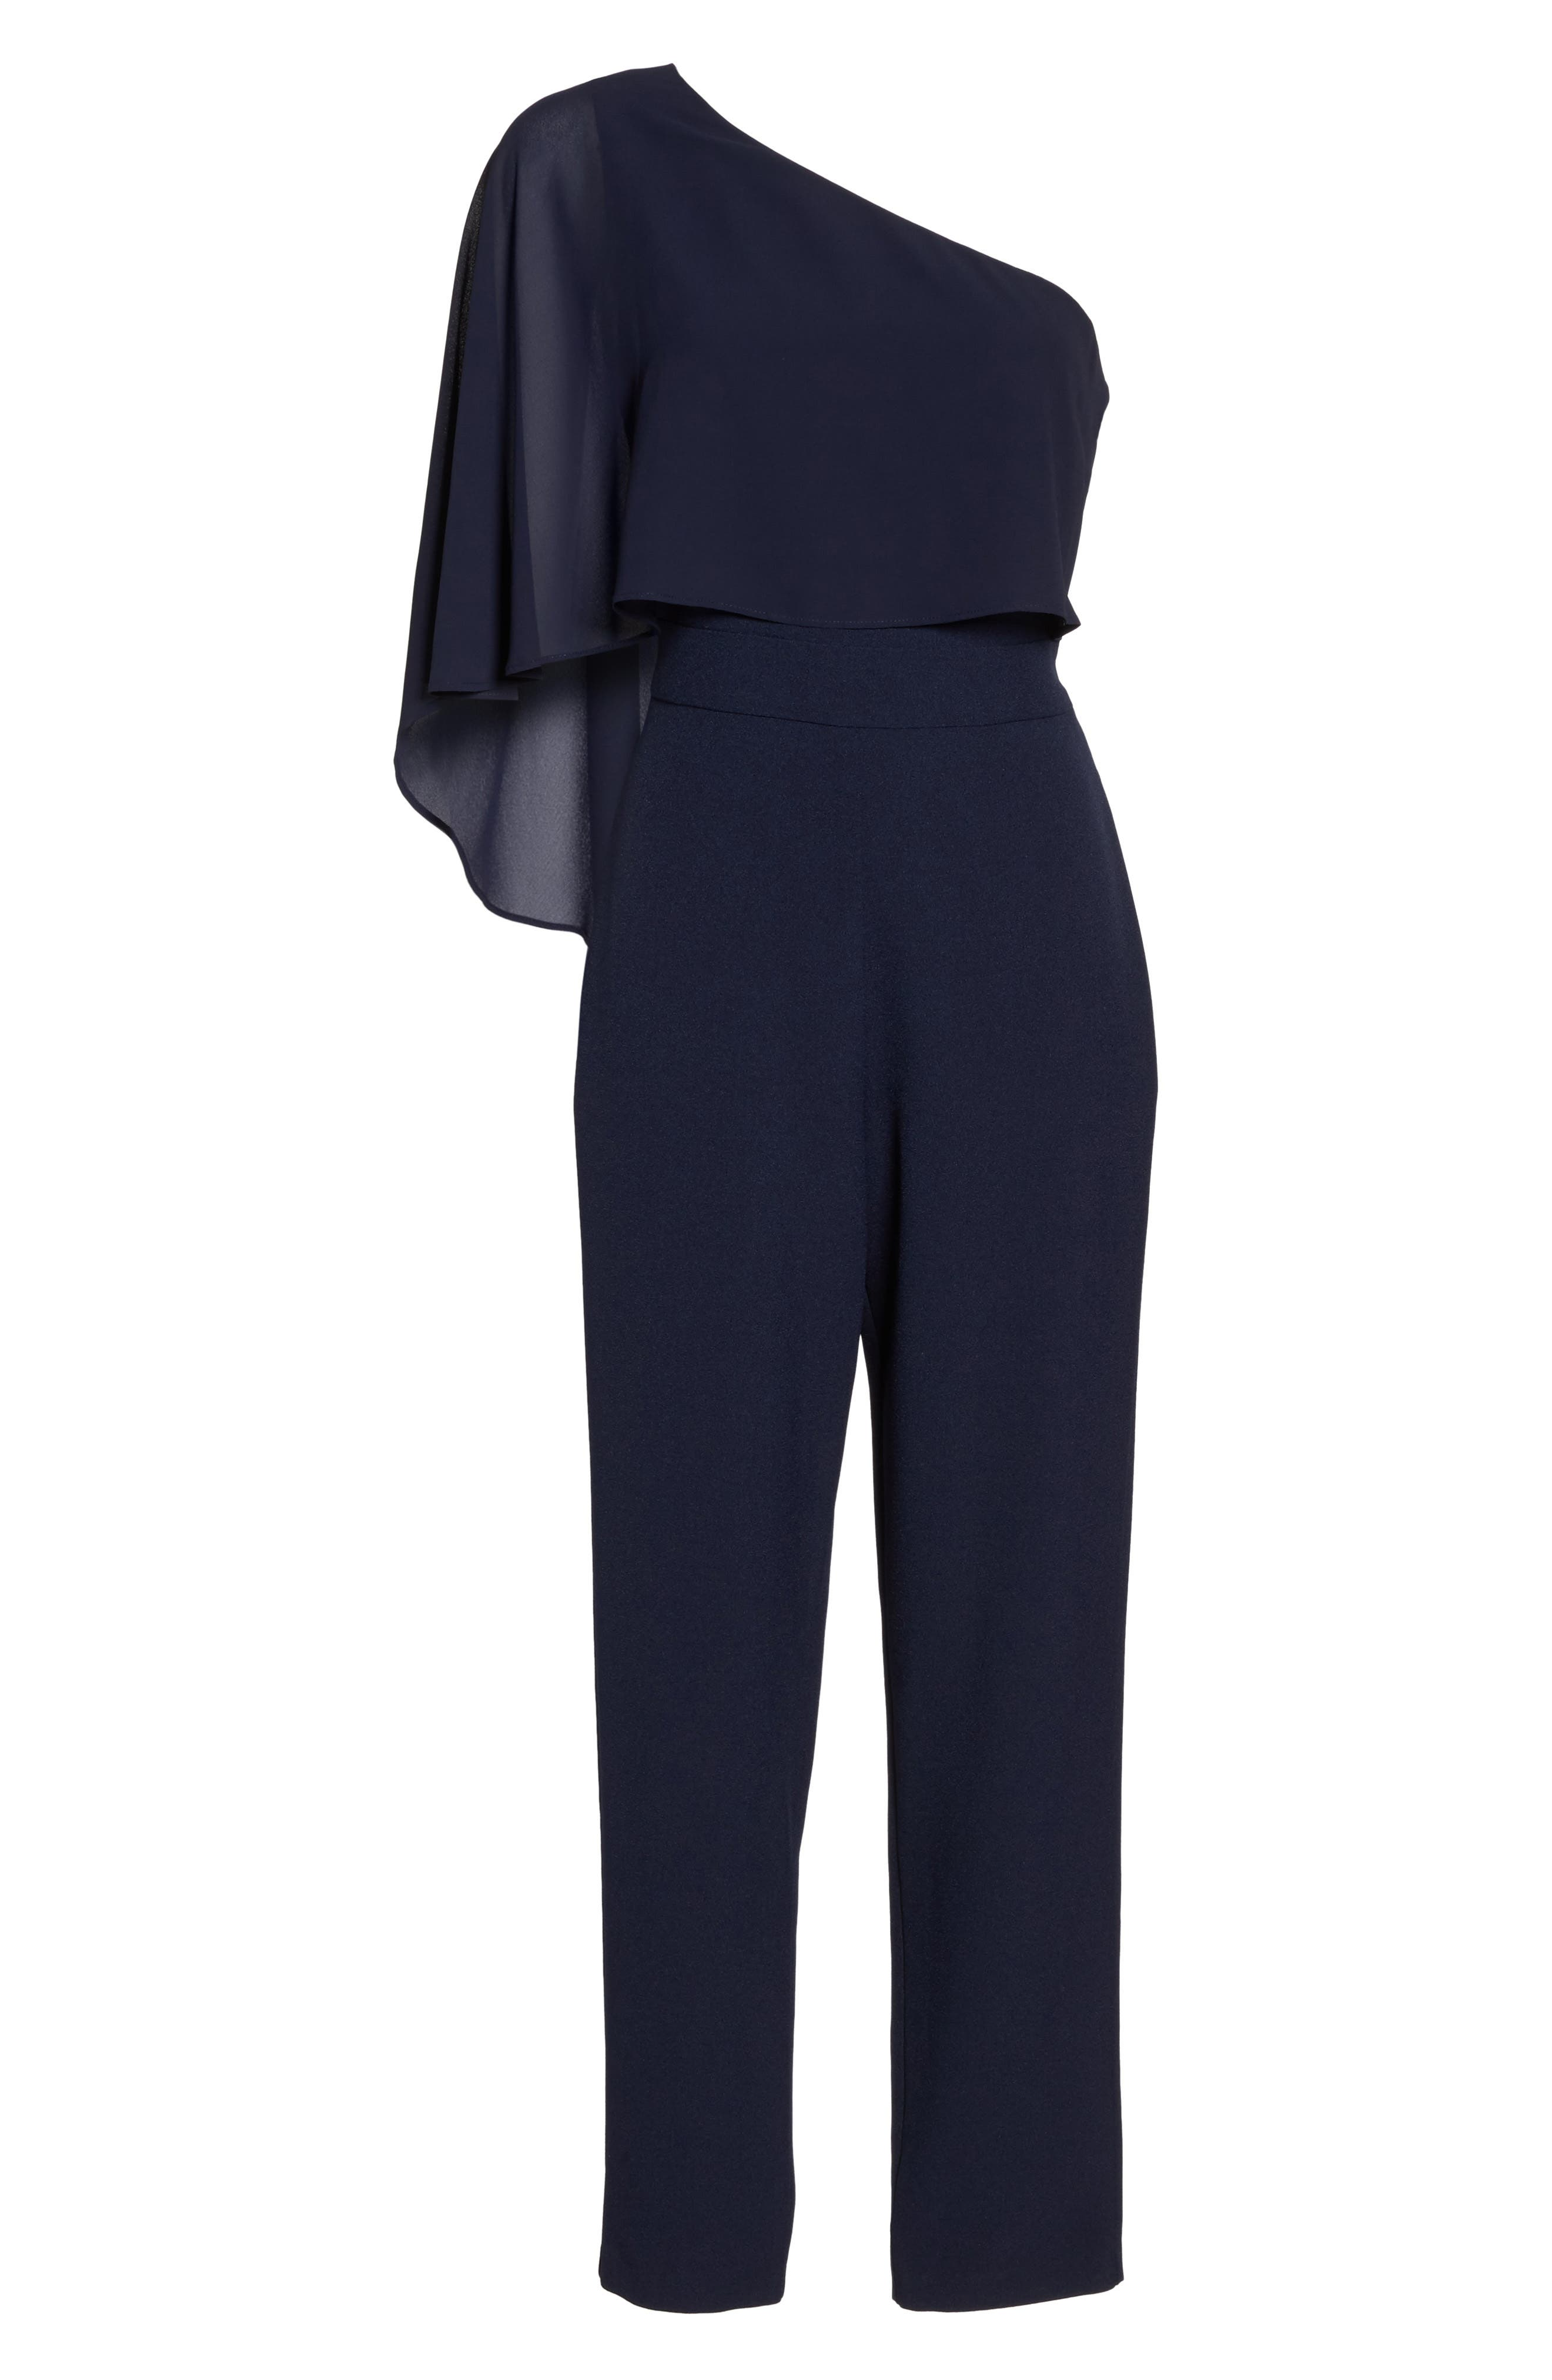 Cape Overlay One-Shoulder Jumpsuit,                             Alternate thumbnail 6, color,                             Navy